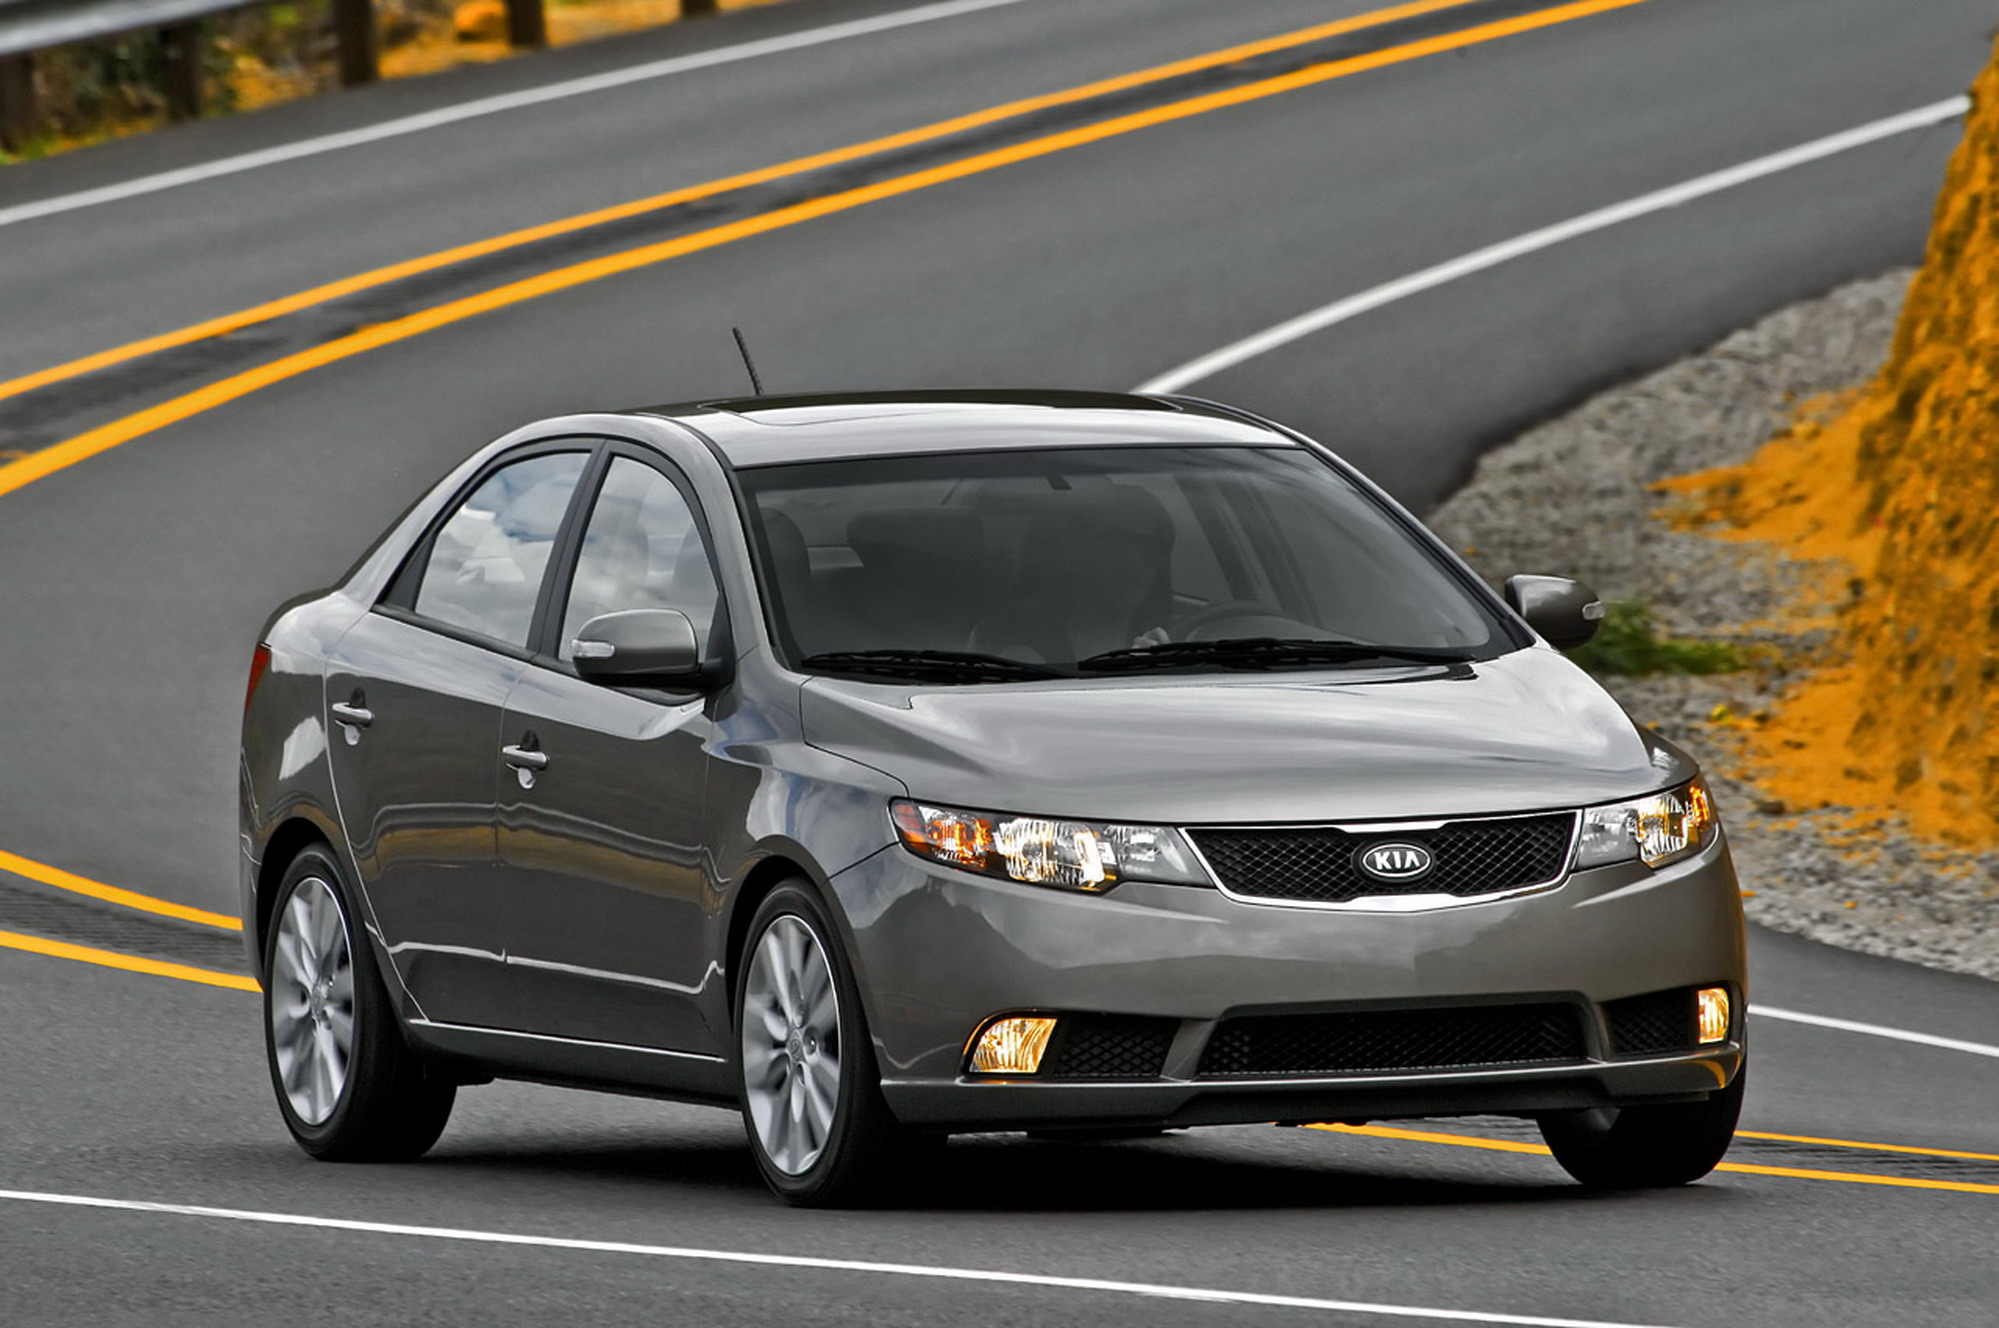 How much does insuring a used Kia Forte cost?